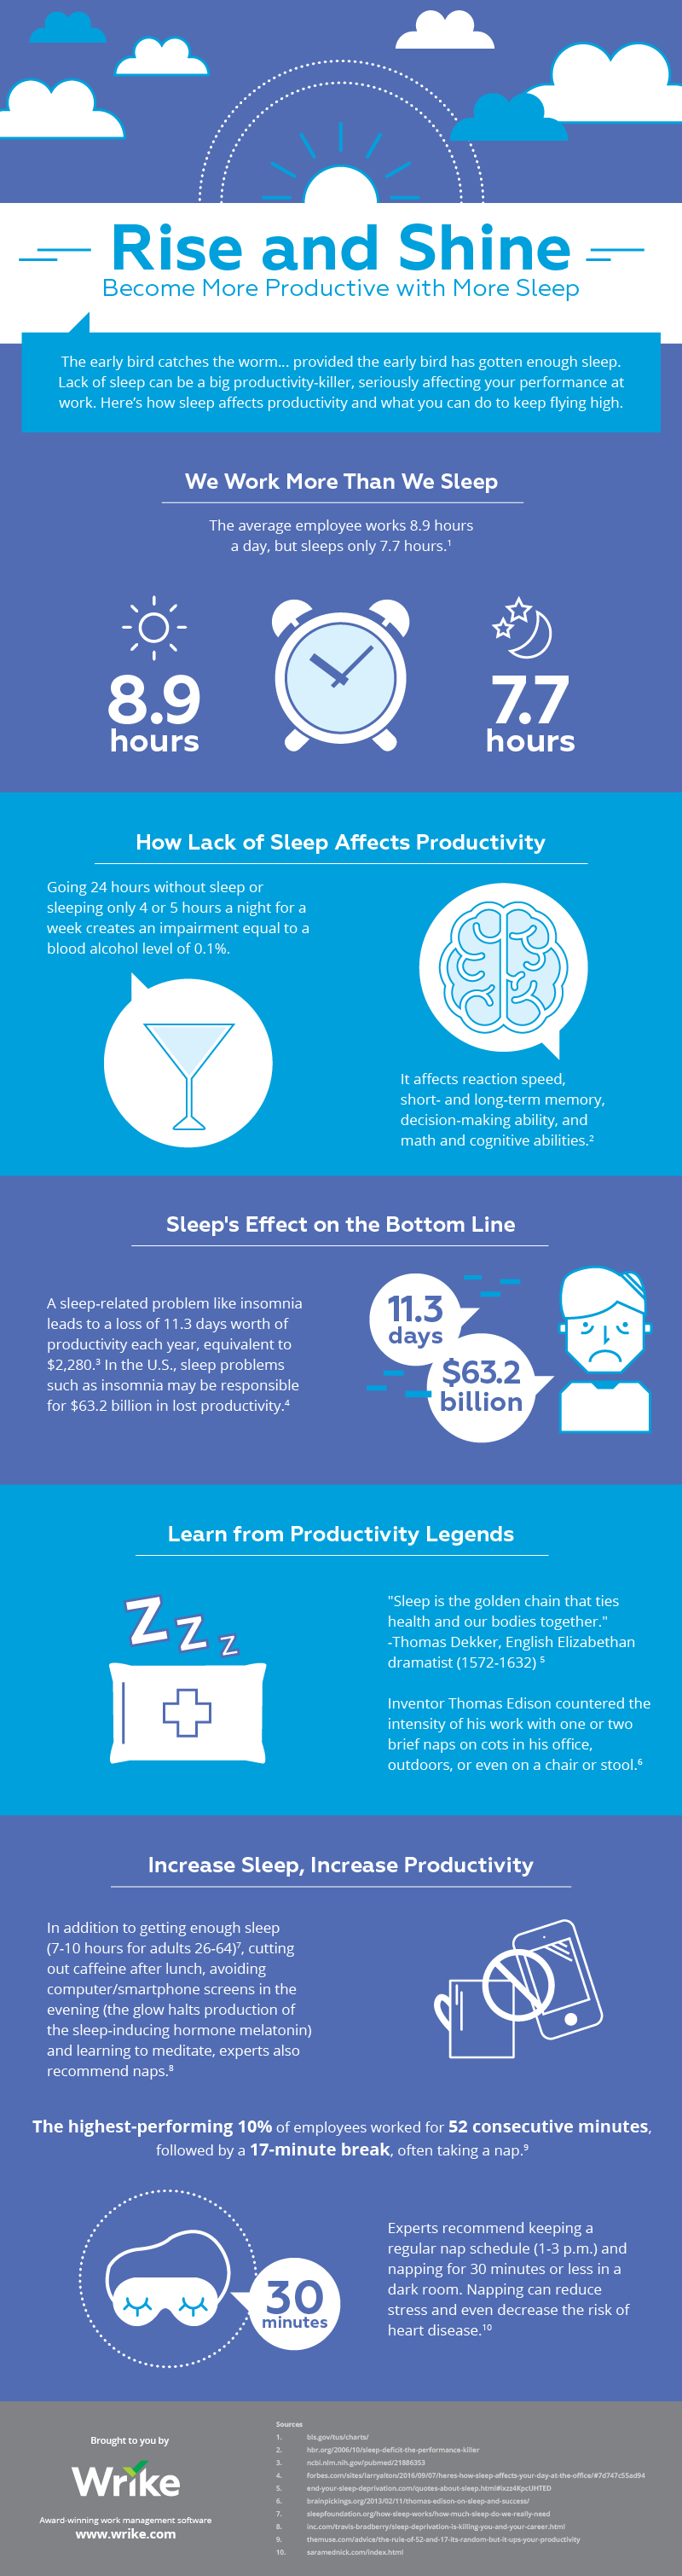 The Simplest Productivity Tip: Get More Sleep Infographic